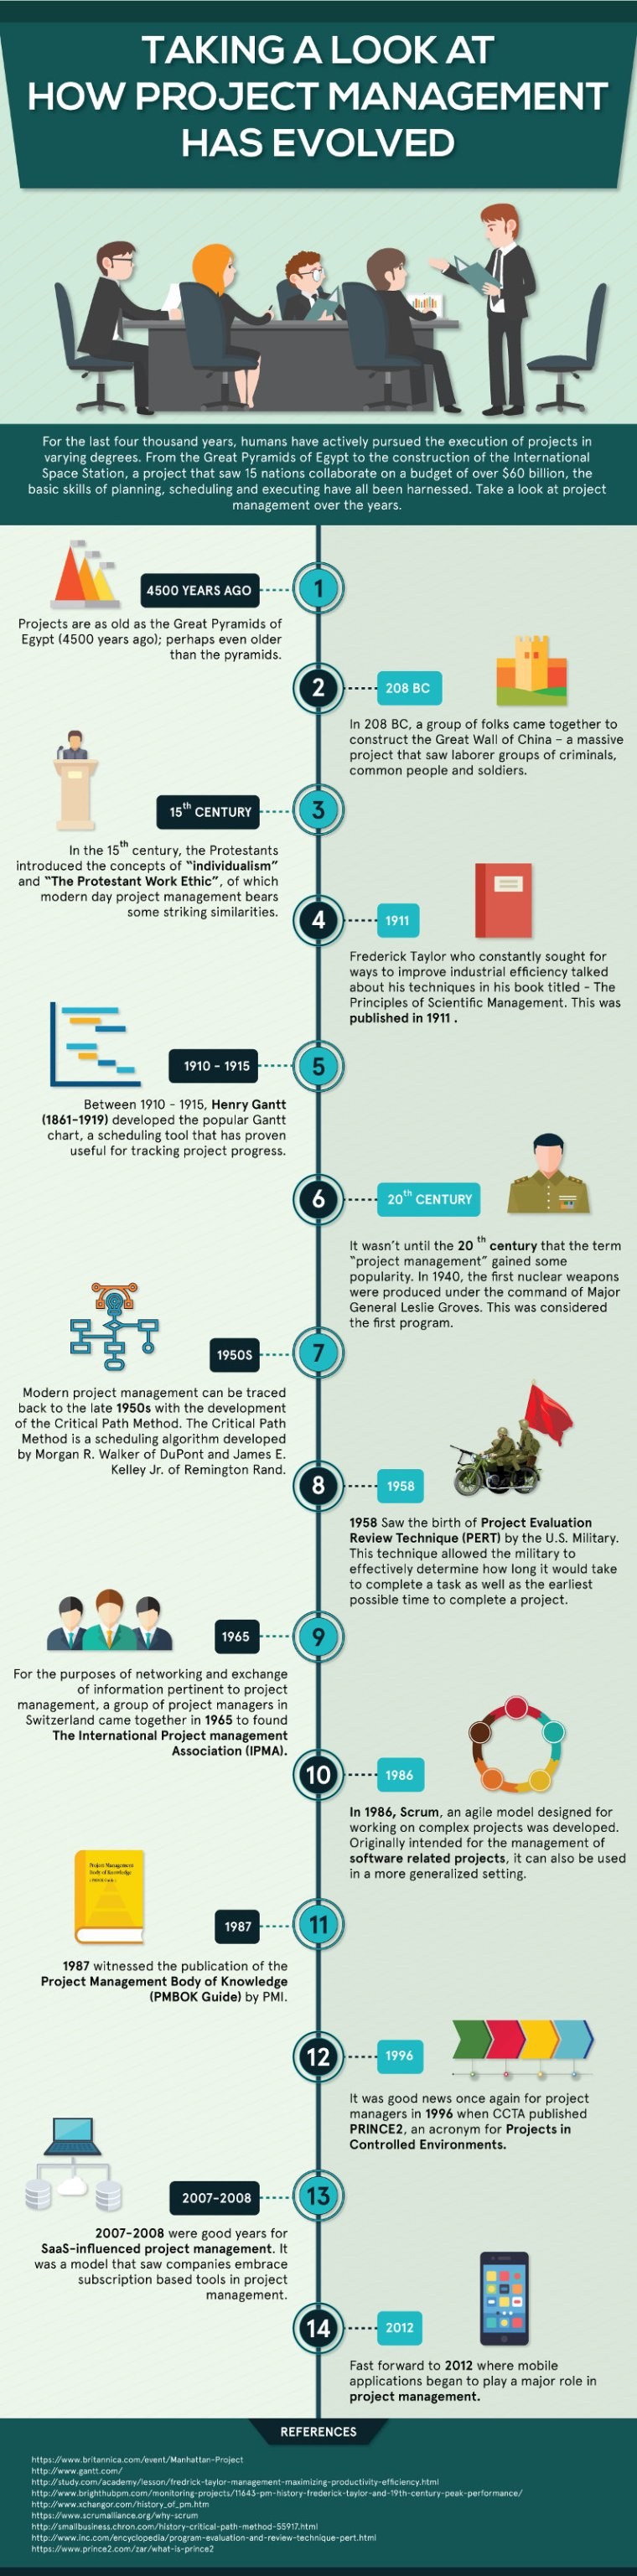 Project management evolution - infographic by Nutcache